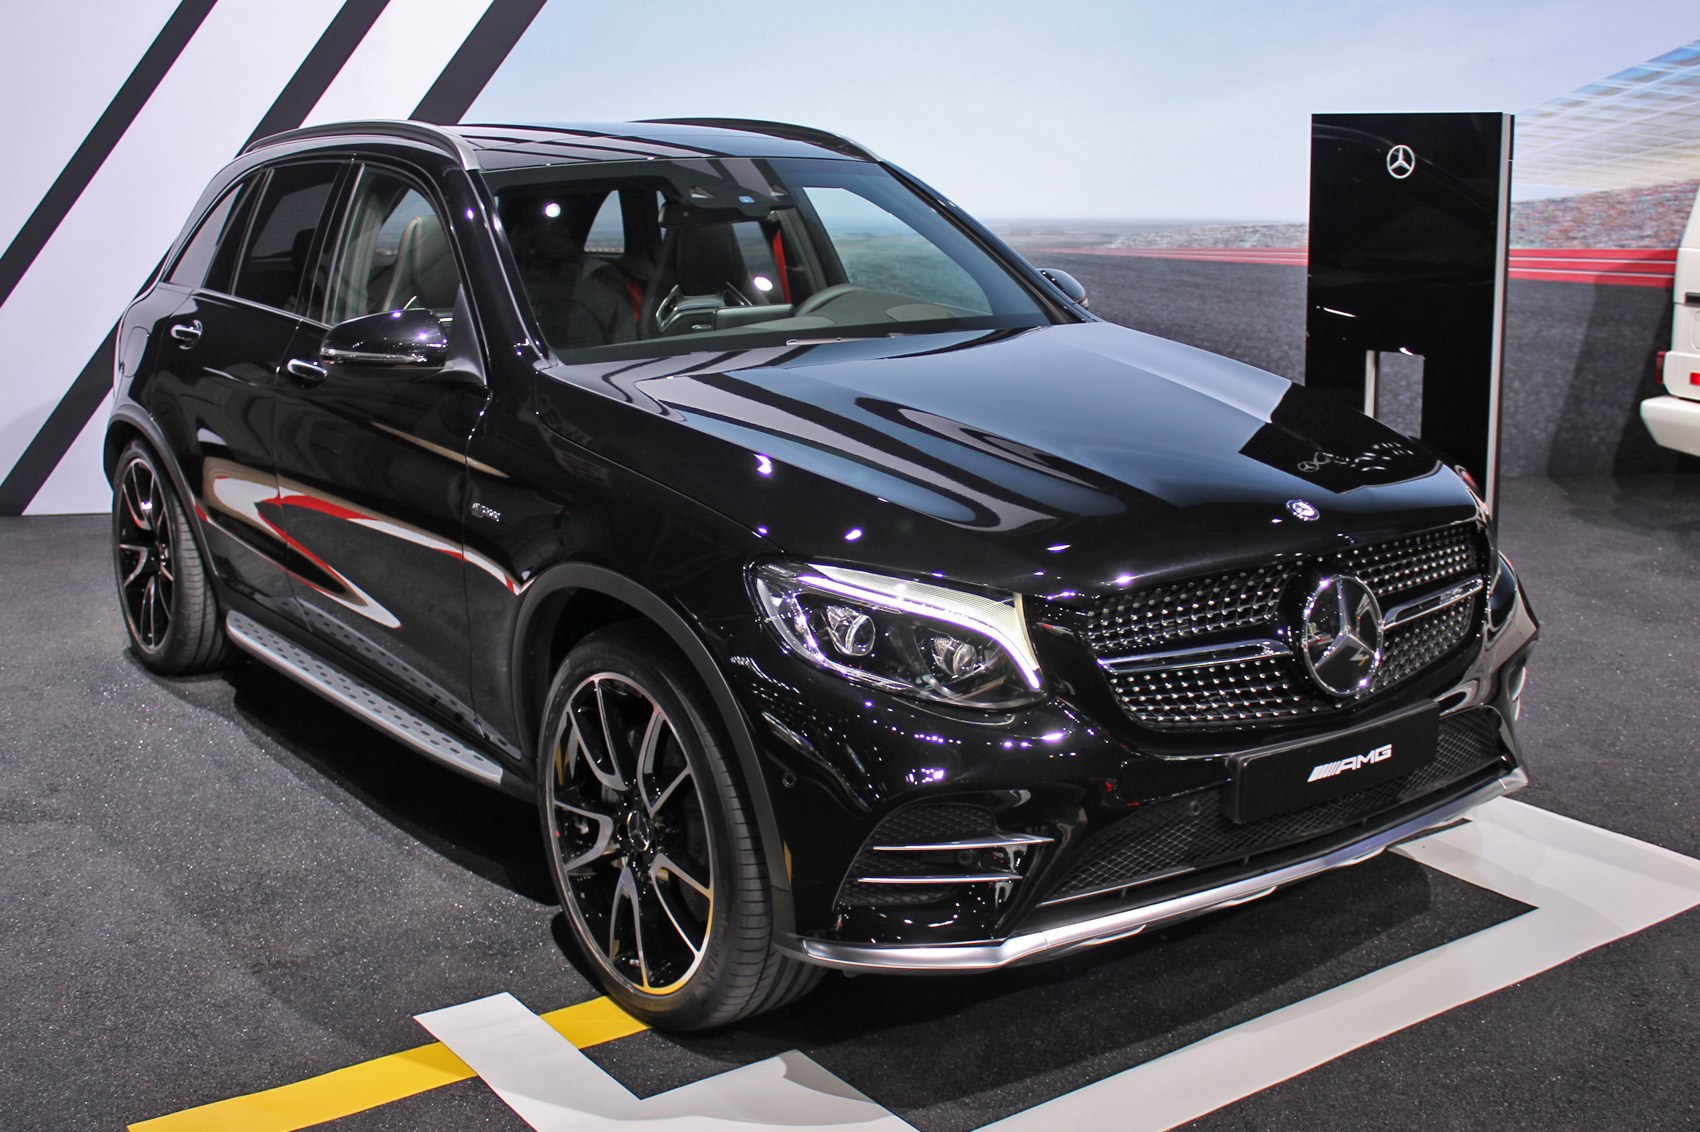 mercedes amg glc 43 4matic is here amg genes for all car magazine. Black Bedroom Furniture Sets. Home Design Ideas